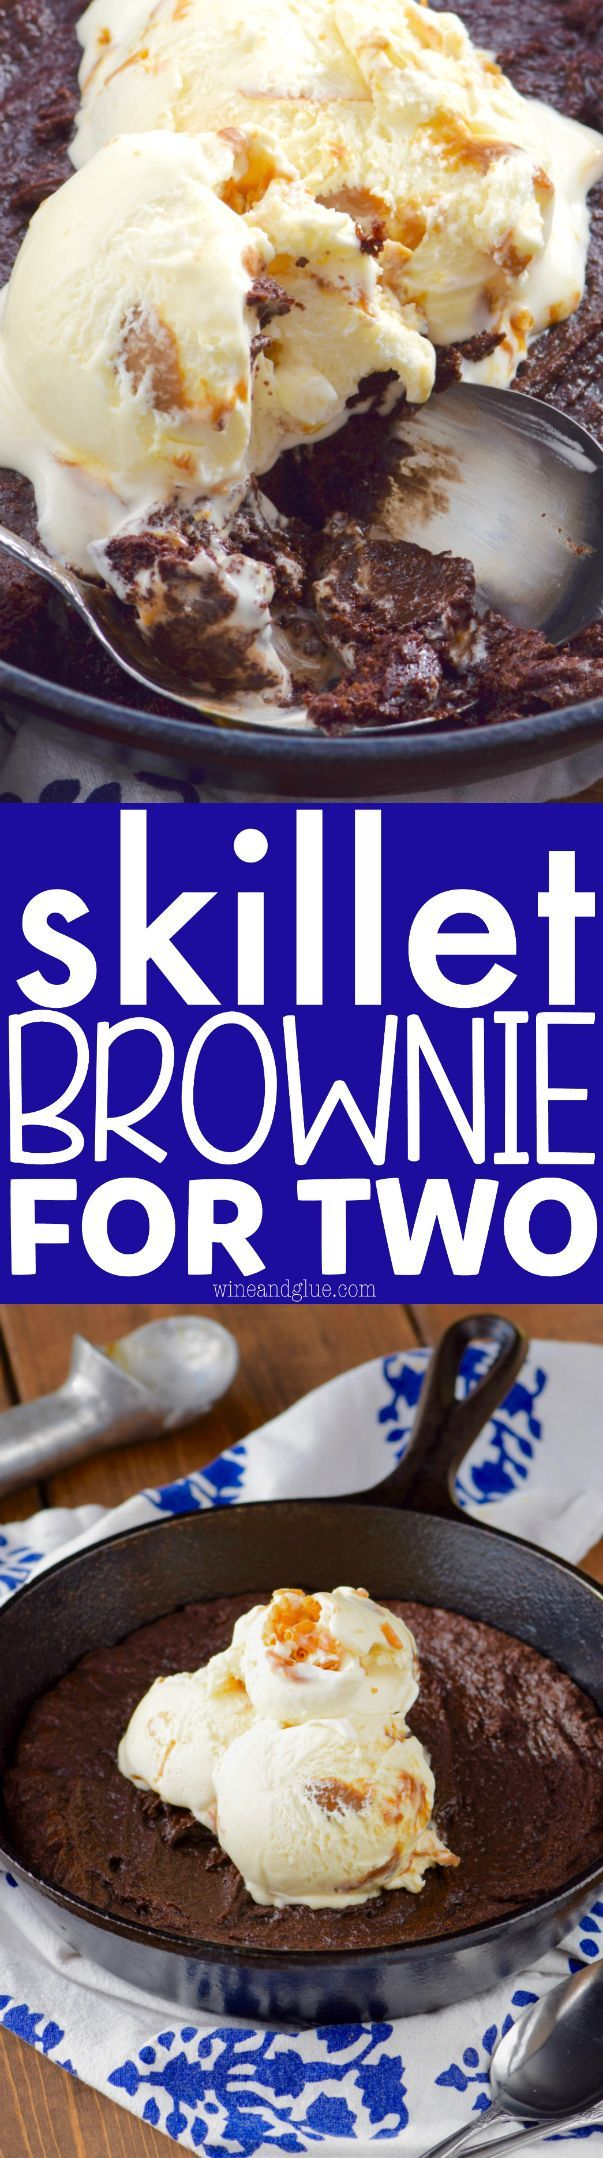 This Skillet Brownie for Two comes together fast in just one bowl and is perfect for a date night or even an after dinner dessert for a family of four! Healthy game movie gluten free girls ideas date late carvings fight poker triva ladies guys friday burns hens saturday easy photography party boys market quotes cooking mornings ovens kids one port peanut butter cheese meat low carb suces friends veggies chocolate chips sweets vegans oats recipes weight loss buzzfeed baked chicken healt...